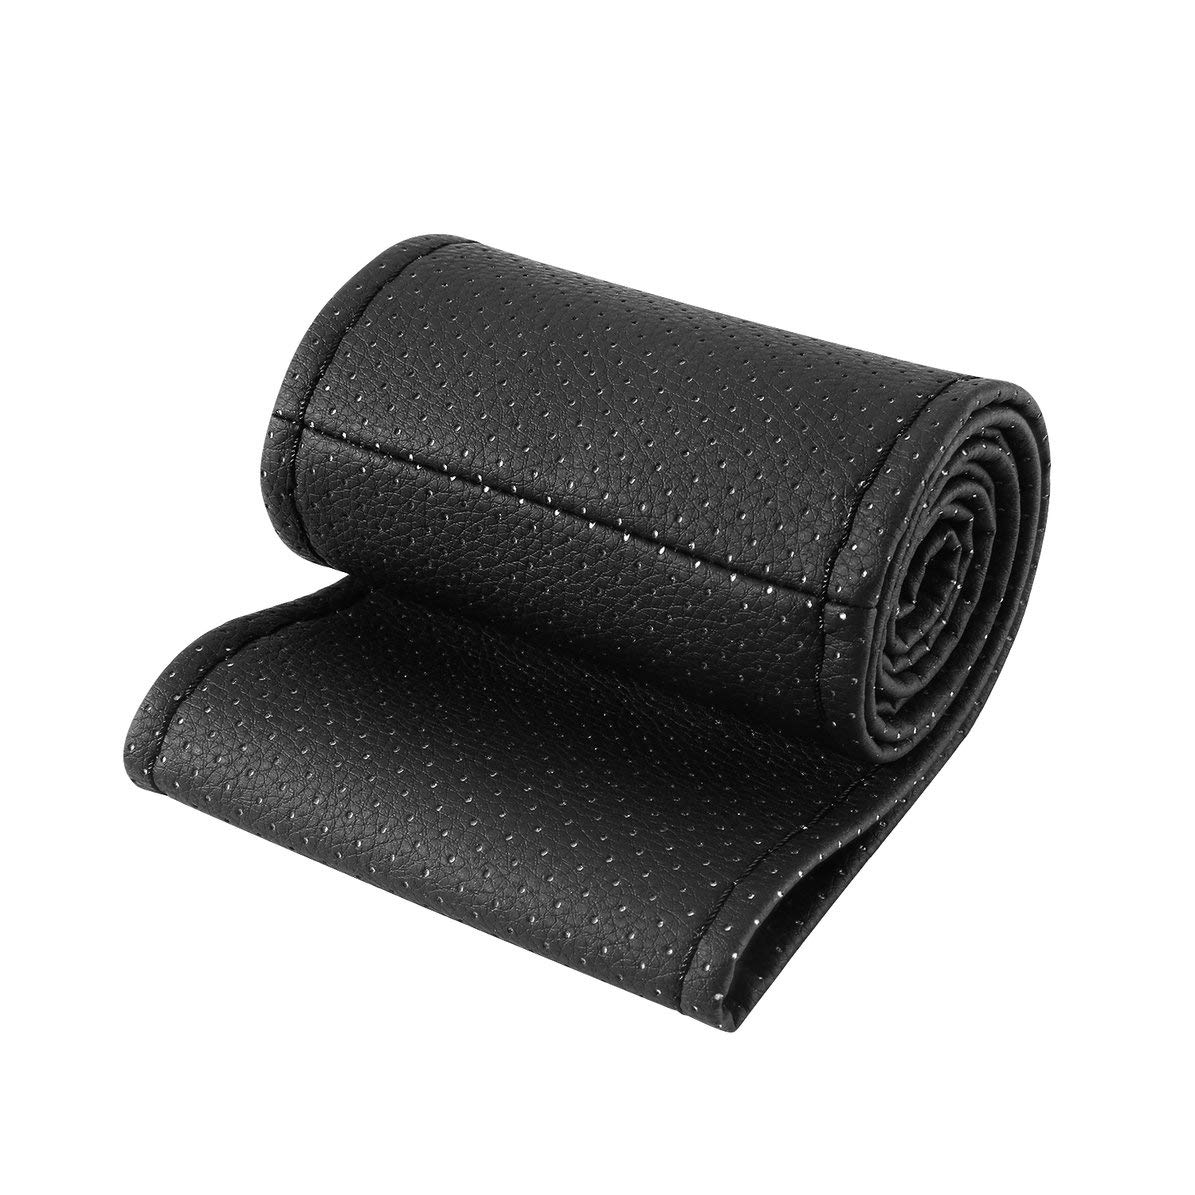 WEIWEITOE Universal PU Leather Car Auto Steering Wheel Cover With Needles And Thread Breathability Skid-Proof Vehicle Cover,black,